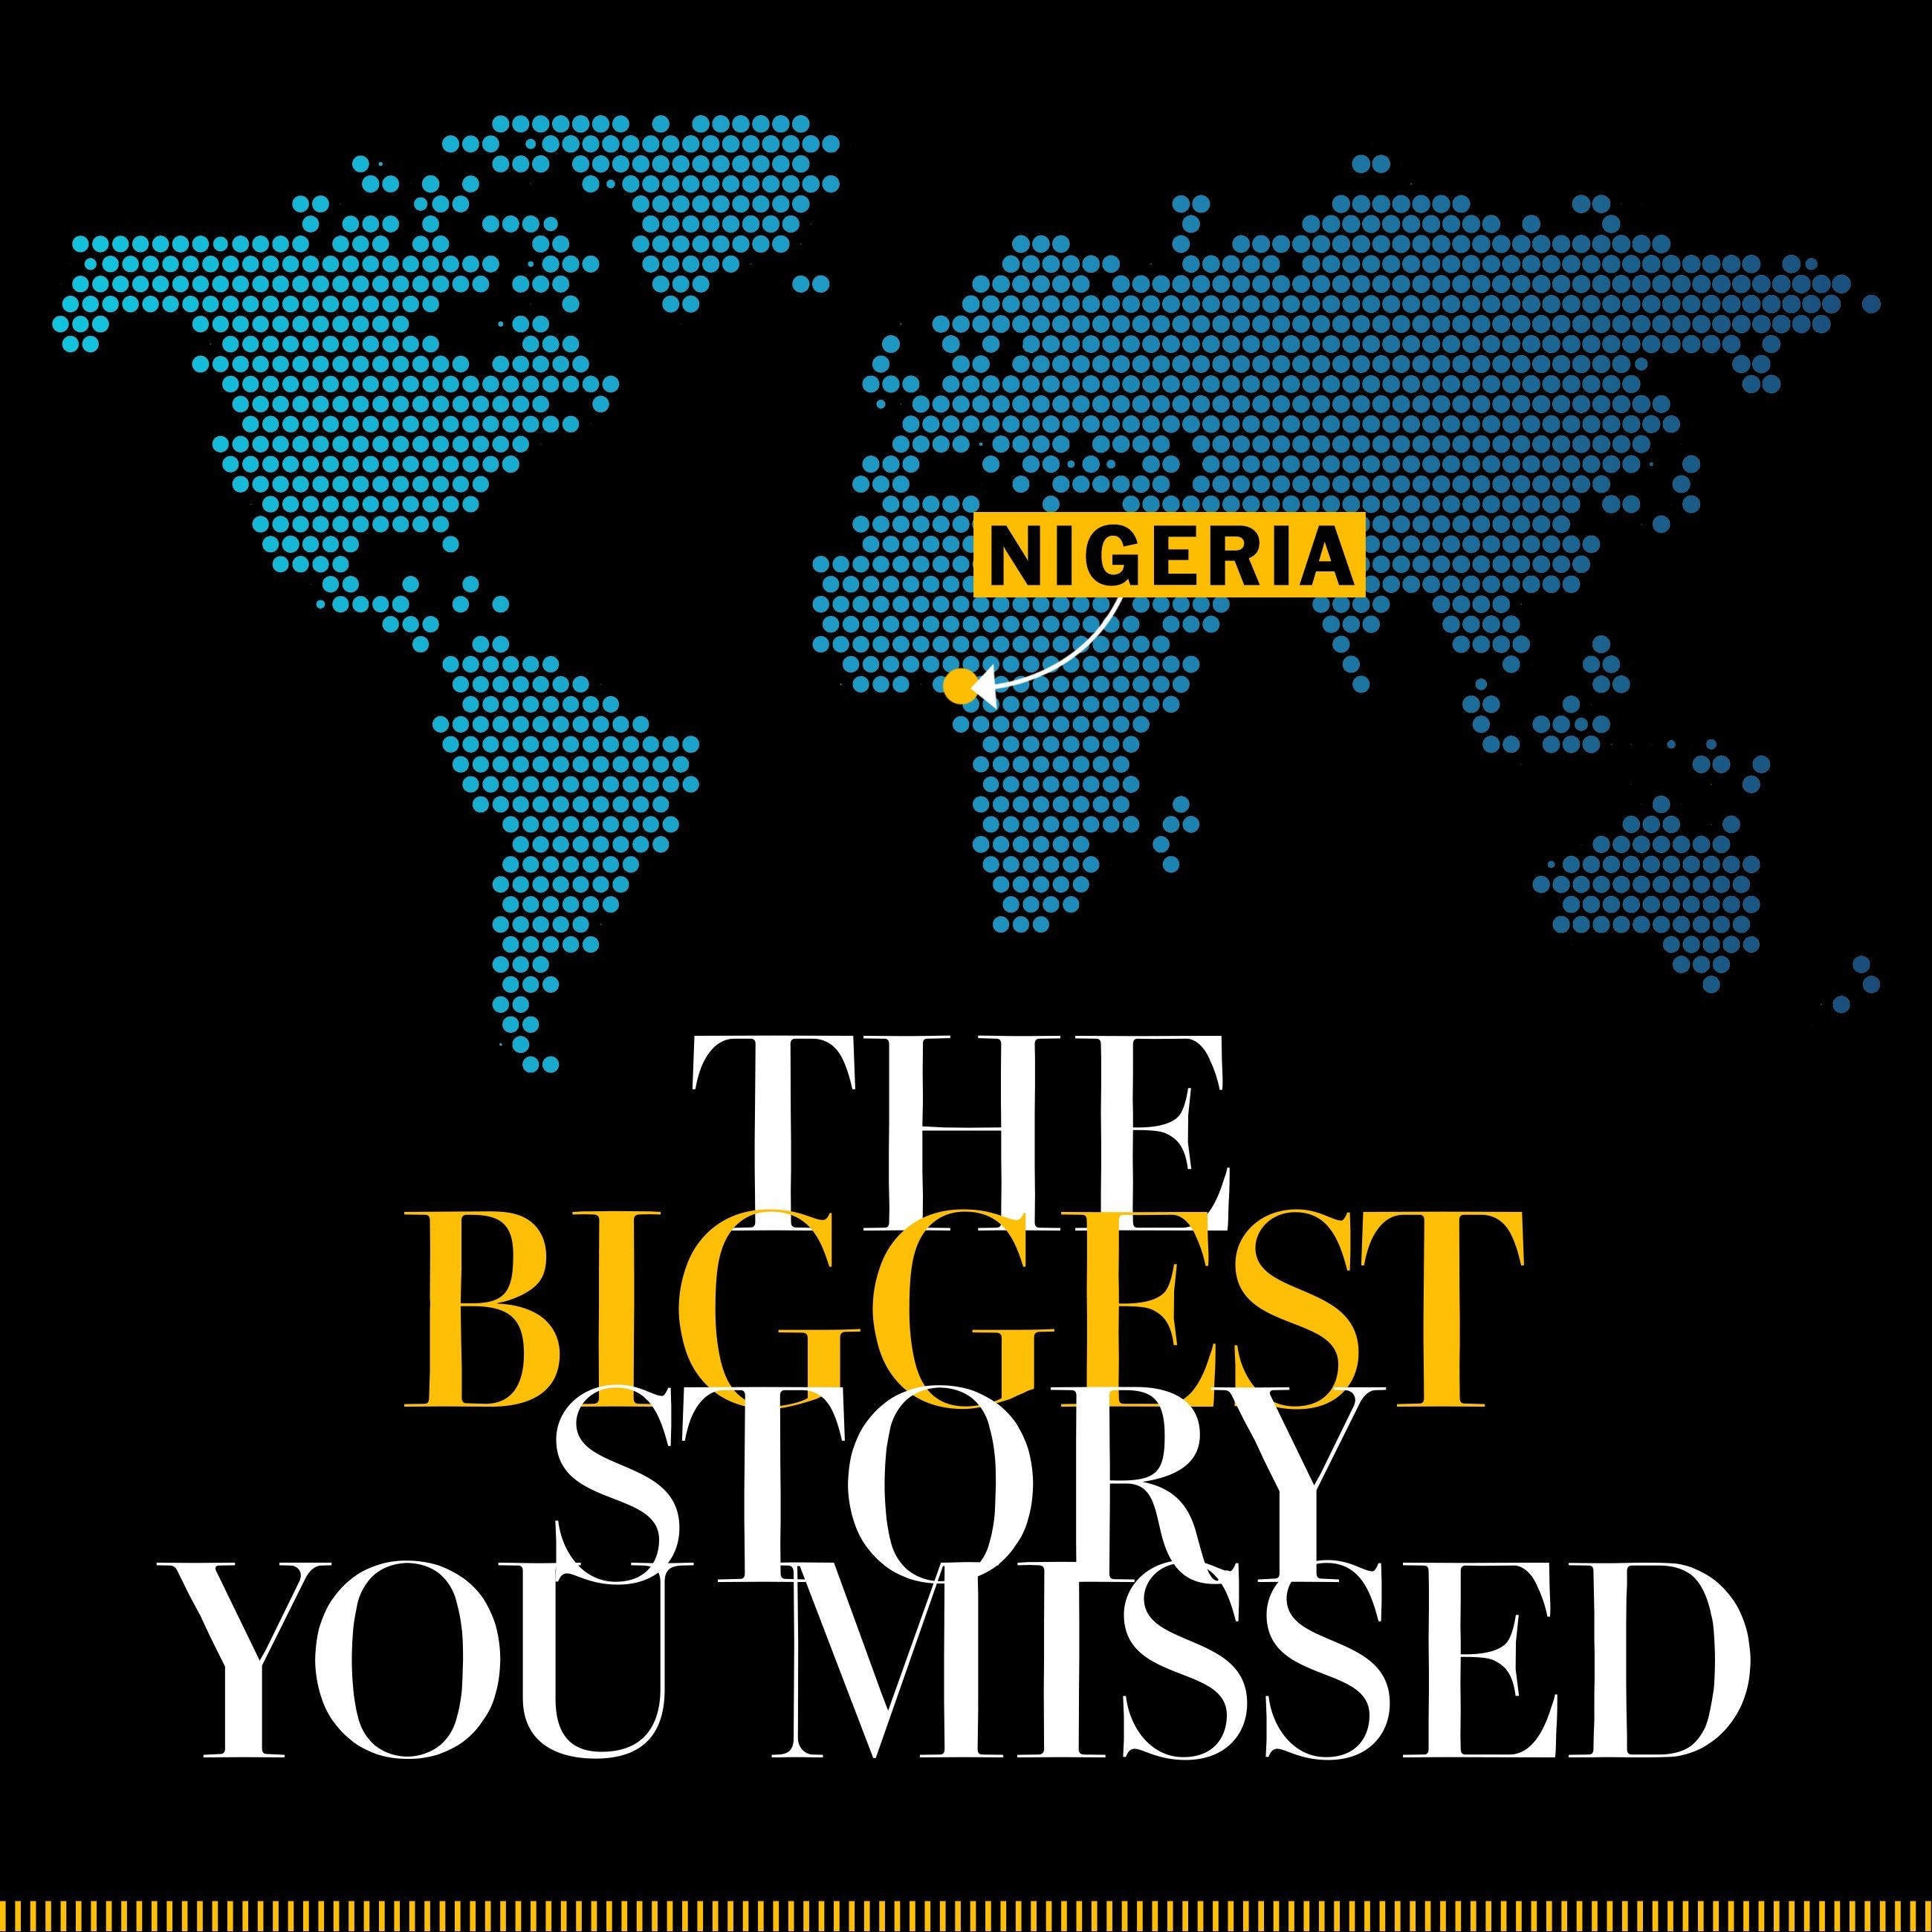 Biggest story you missed: Nigeria's missing children